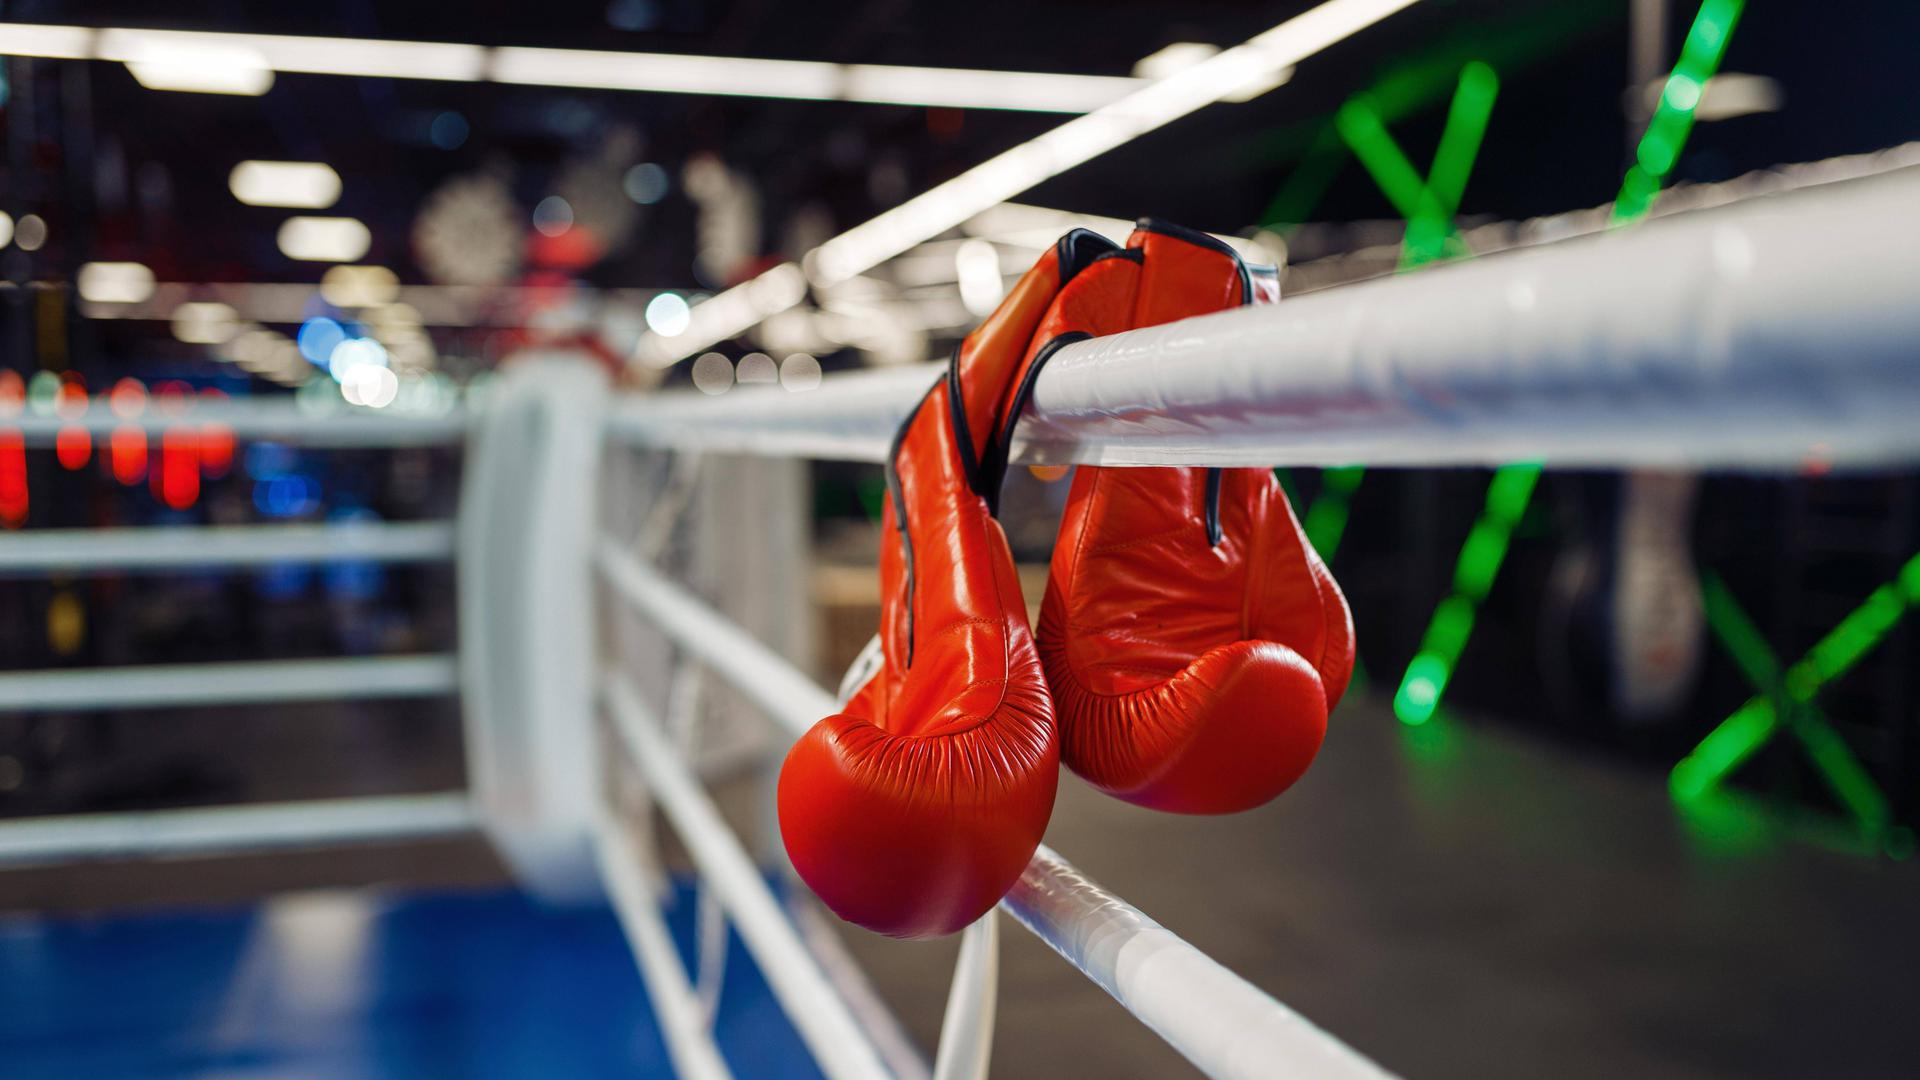 Pair of red boxing gloves hanging on a ropes Copyright: xNomadSoulx Panthermedia28310802